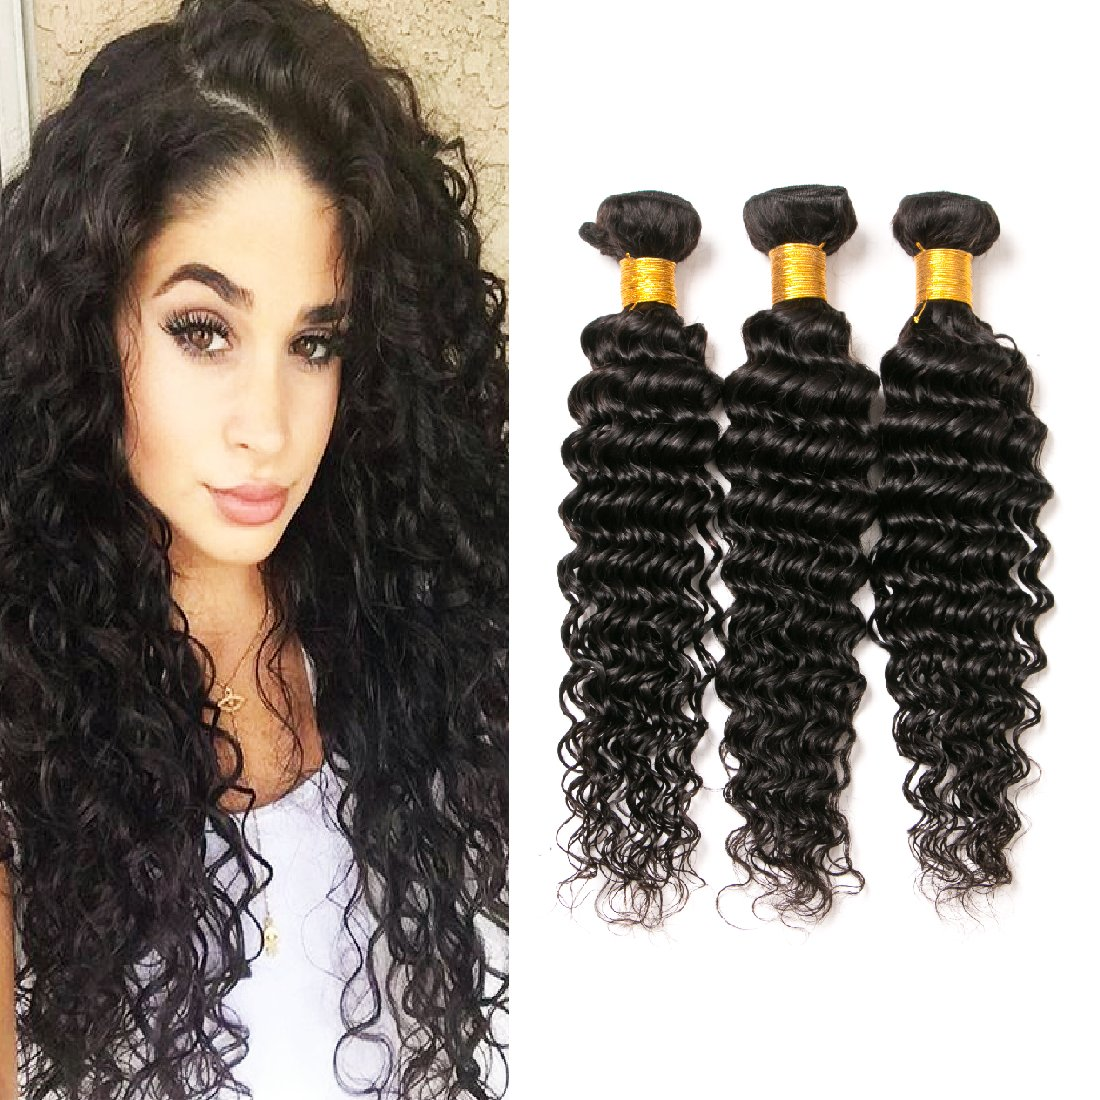 tissage bresilien lisse lot de 4 deep wave curly 10a real cheveux bresilien tissage human naturel lisse paquets(22 24 26 28 inches) Xuchangjiujiuji